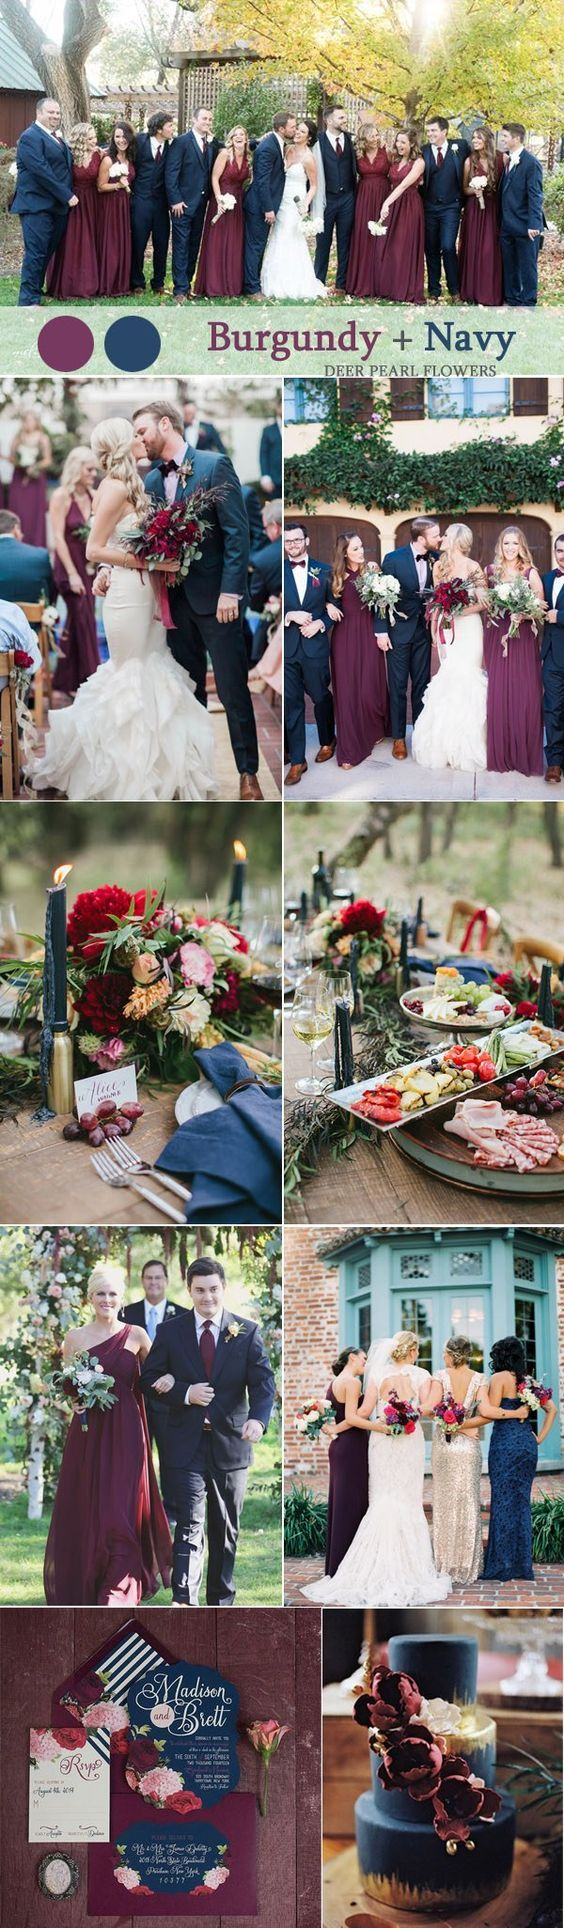 25 burgundy and navy wedding color ideas | my not so secret